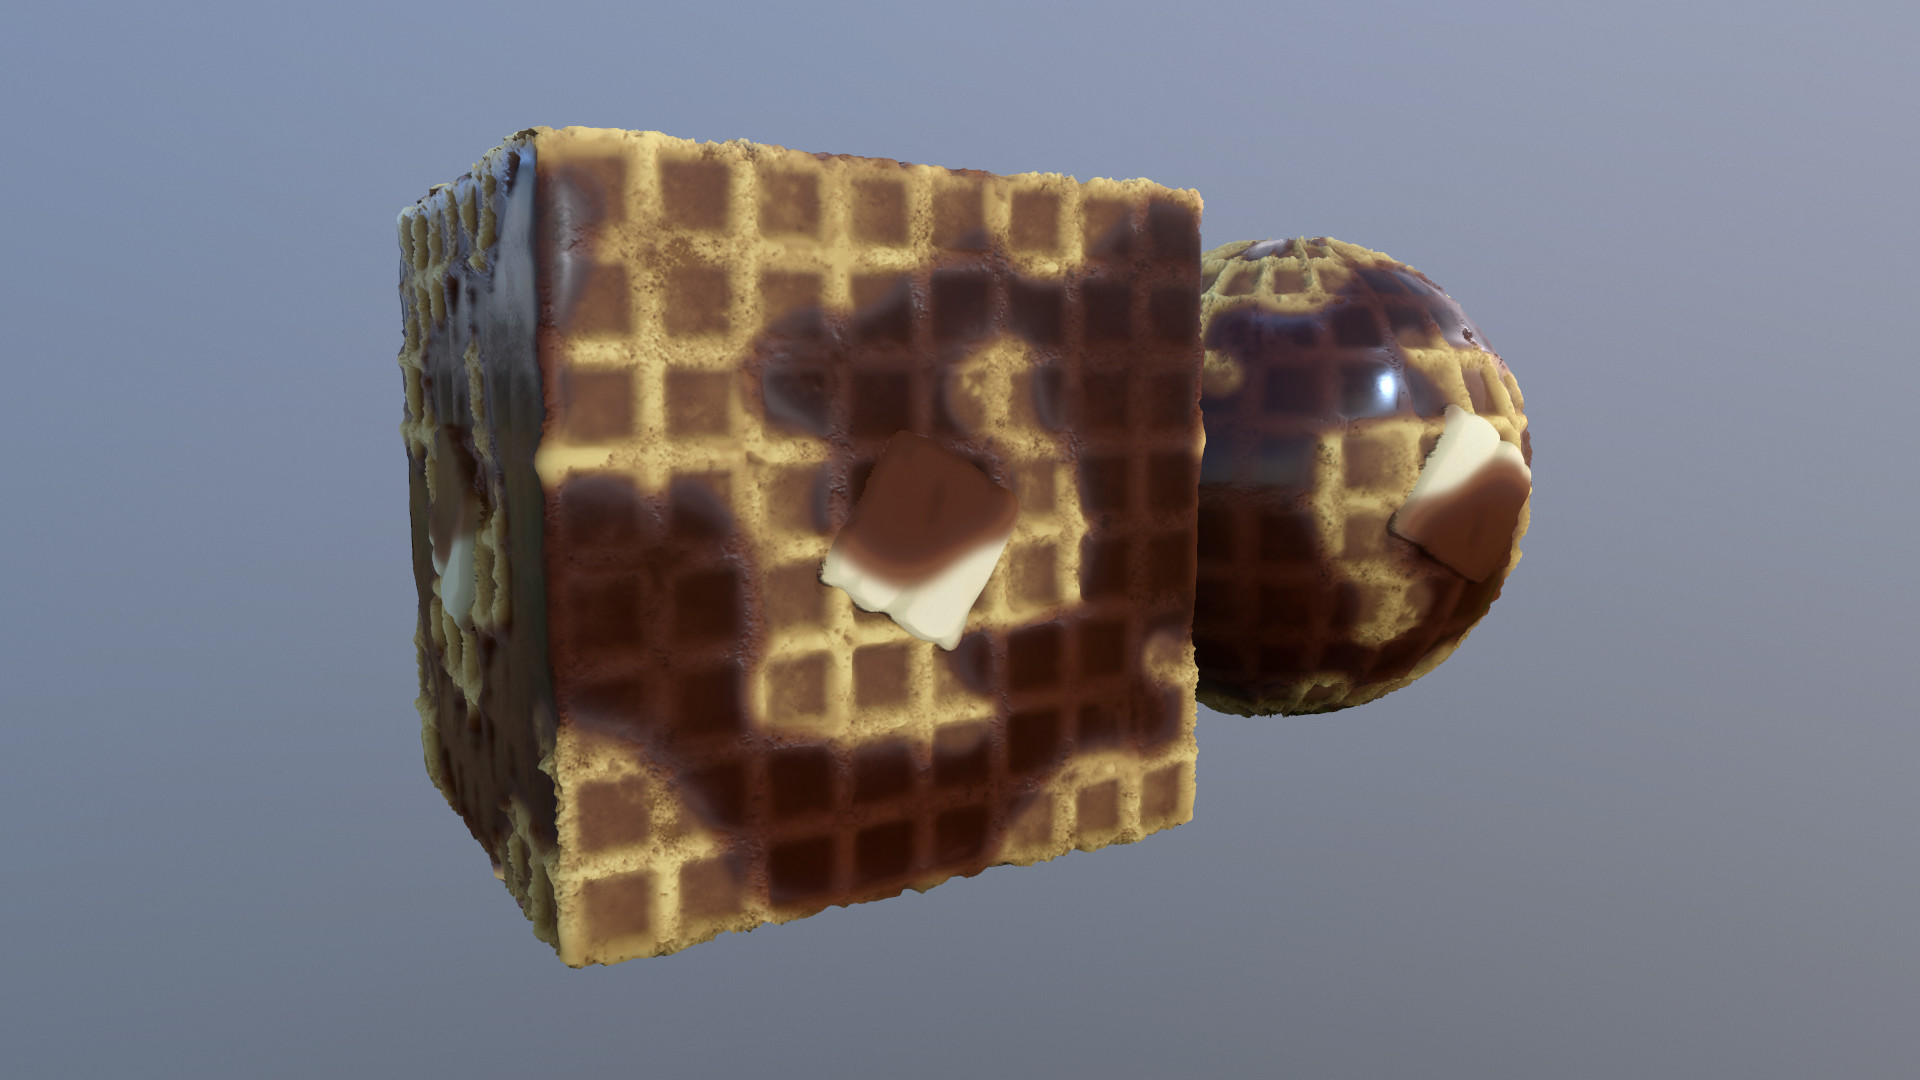 Yes, this is a waffle substance material I made that is available on substance share.